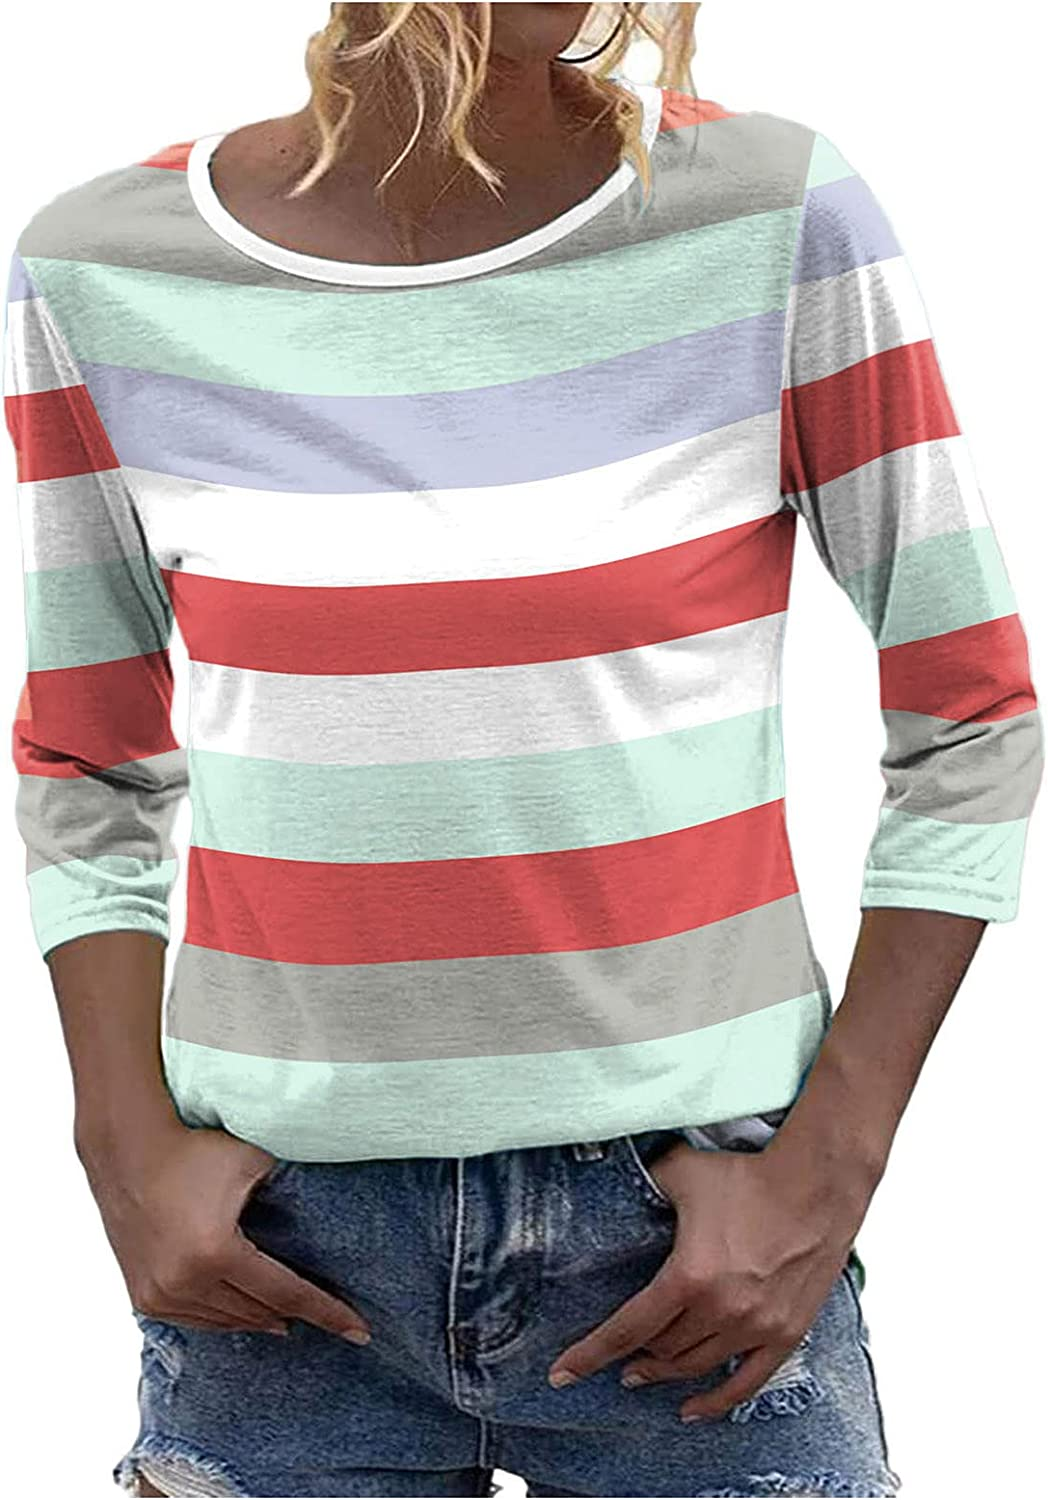 Women's 3/4 Sleeve Tunics Tops Slim Fit Round Neck T-Shirts Solid Color Stripe Priting Blouses for Teen Girls